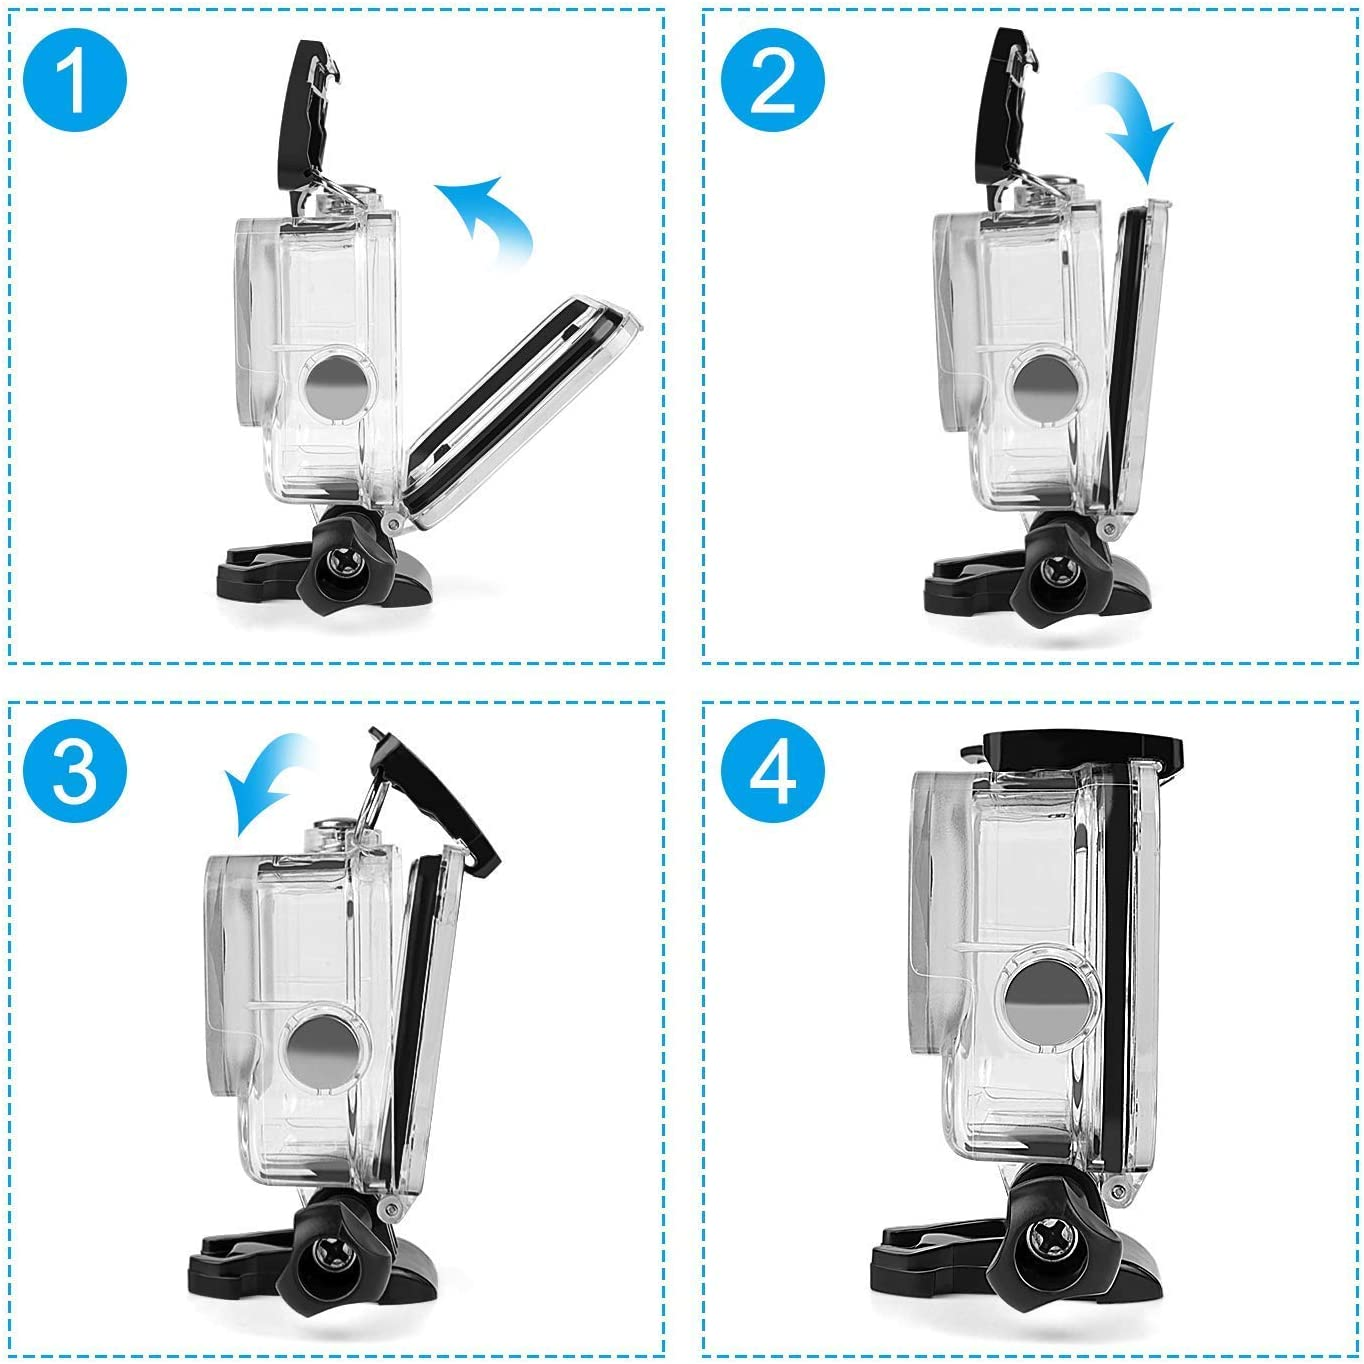 2020 164FT//50M Waterproof Case Diving Protective Housing Shell for GoPro Action Camera Underwater Dive Case Shell with Mount /& Thumbscrew Ouxunus Waterproof Housing Case for GoPro Hero 9 Black